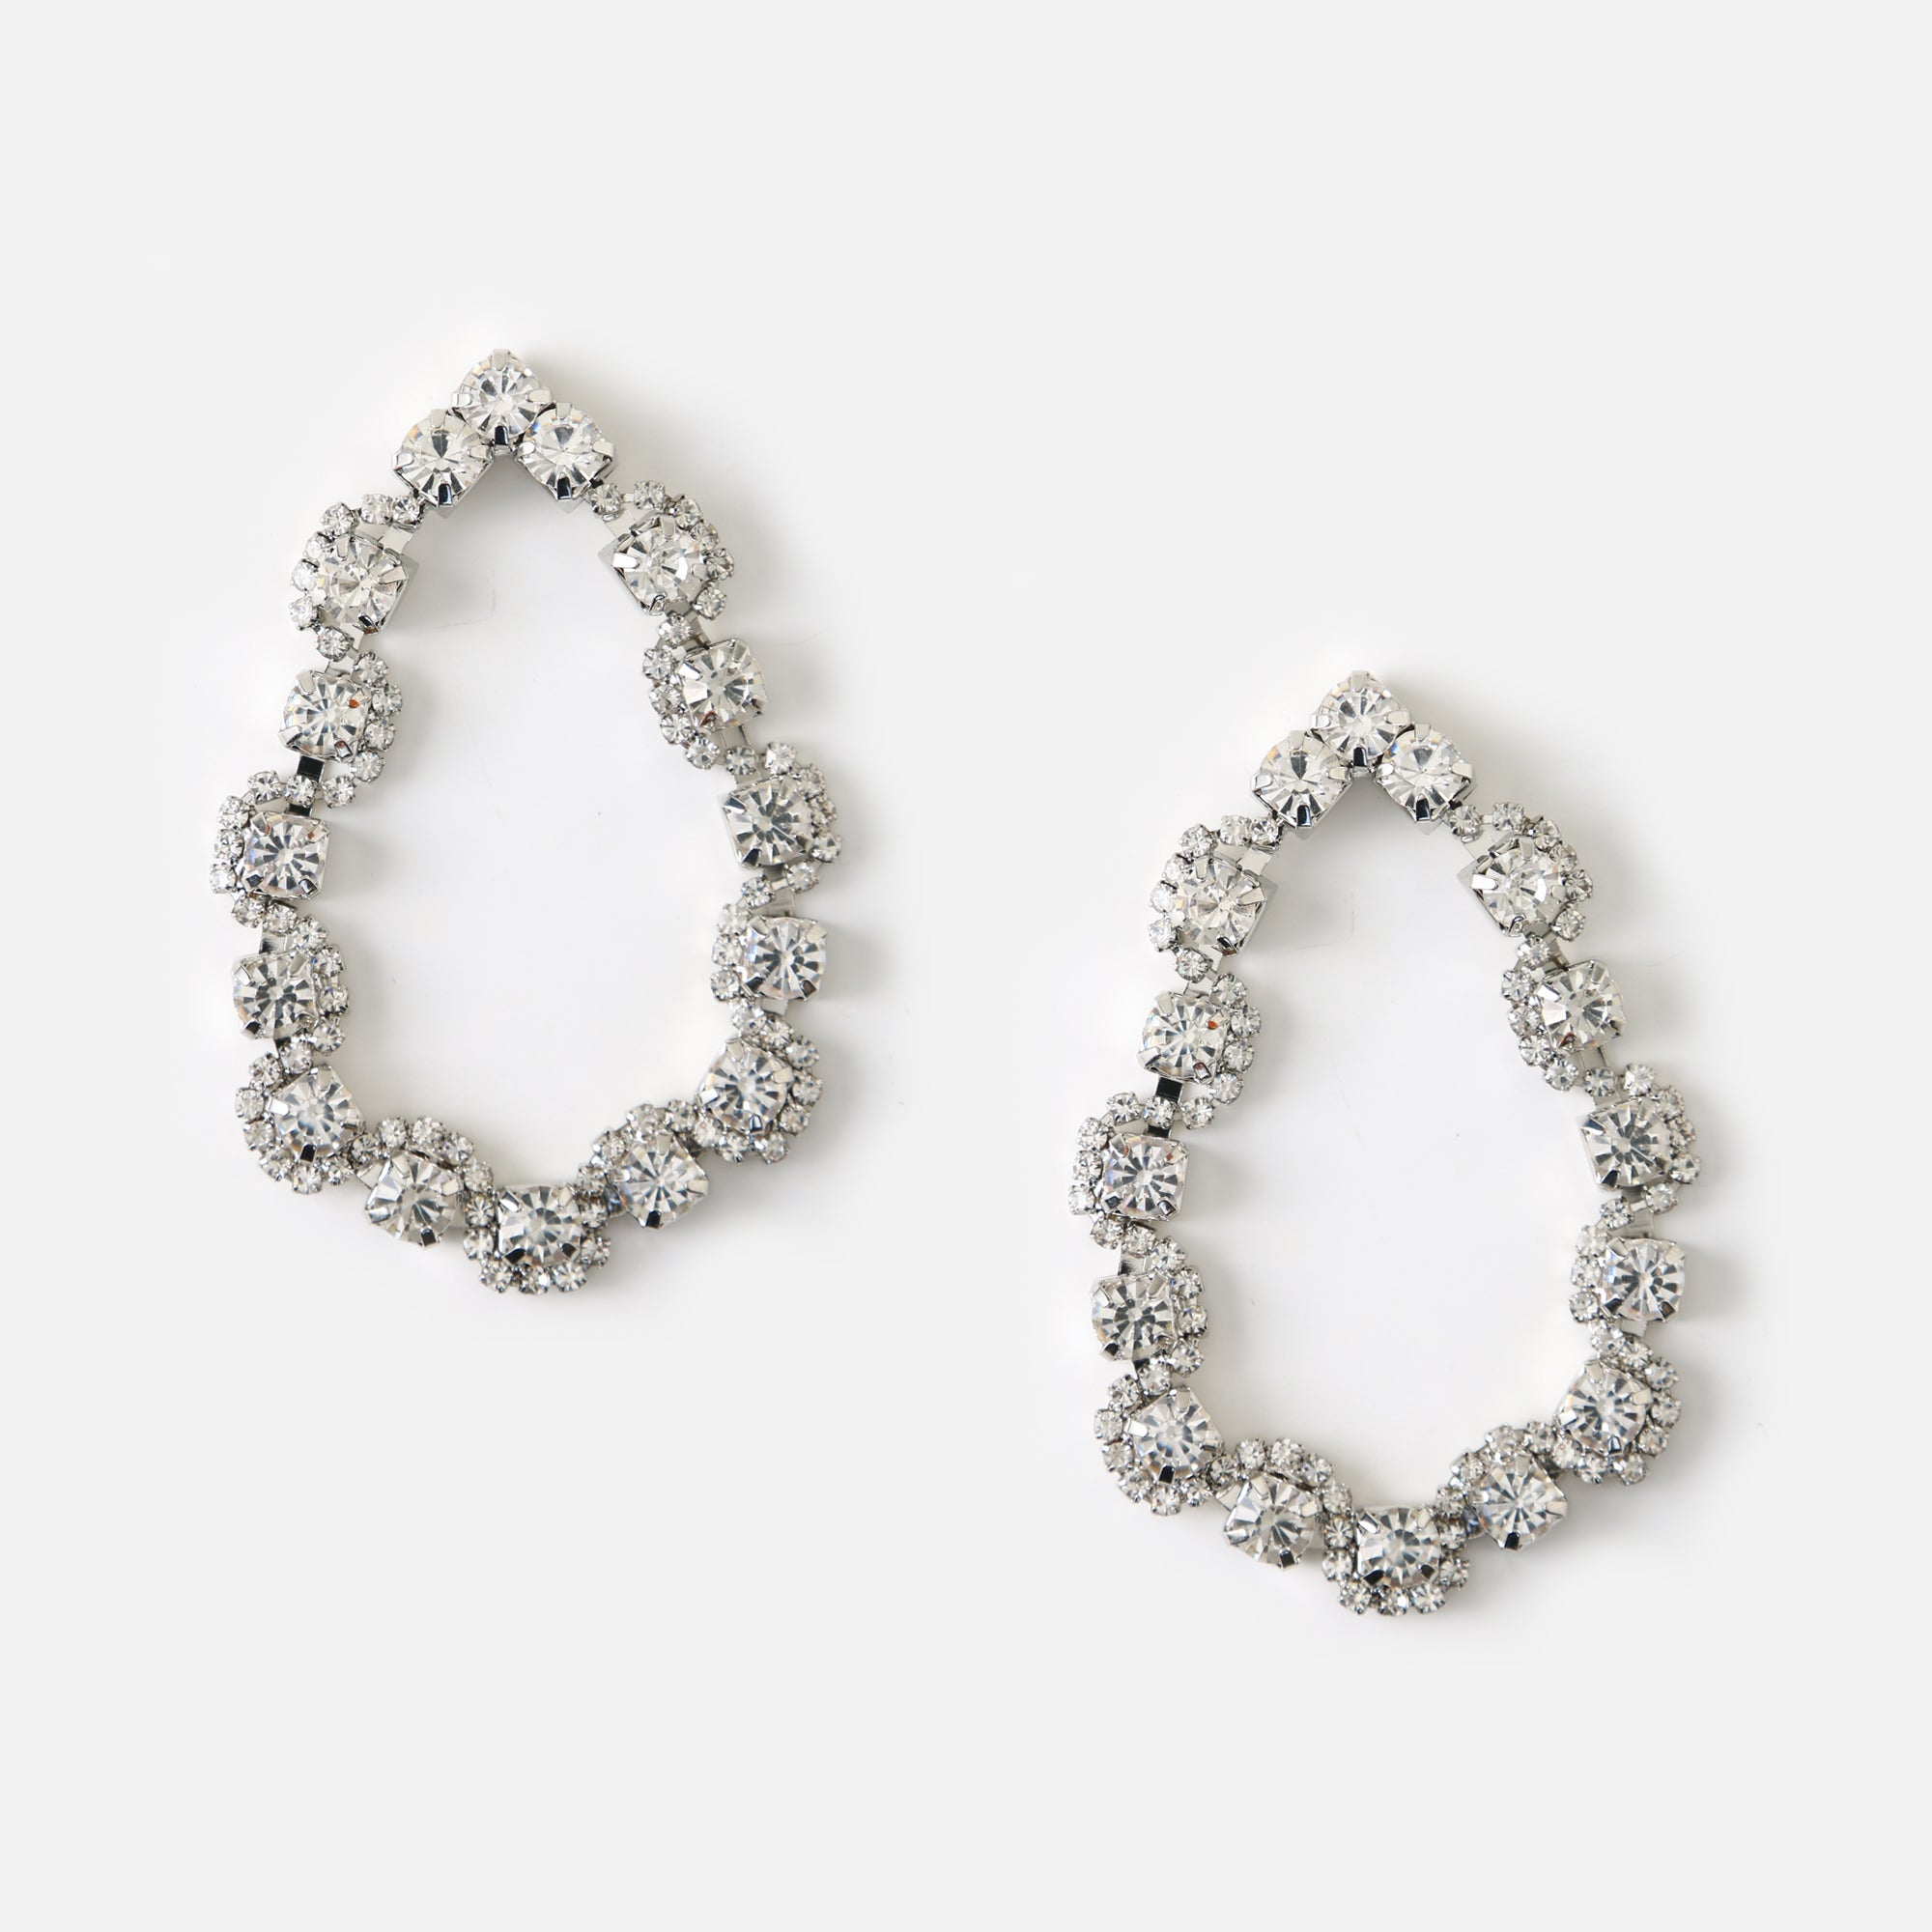 Statement Crystal Teardrop Earrings